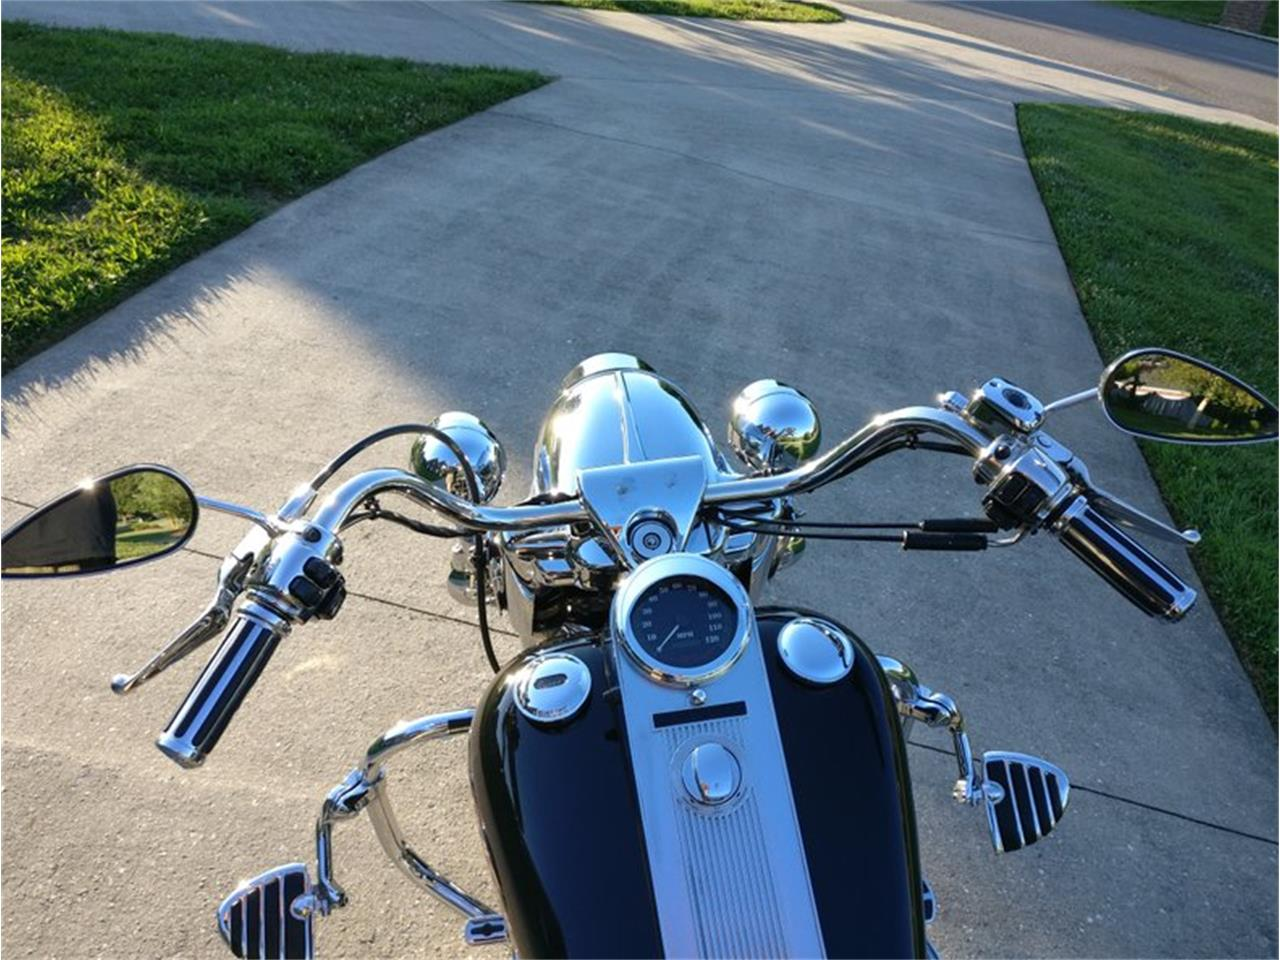 1998 Harley-Davidson Road King for sale in Cookeville, TN – photo 11